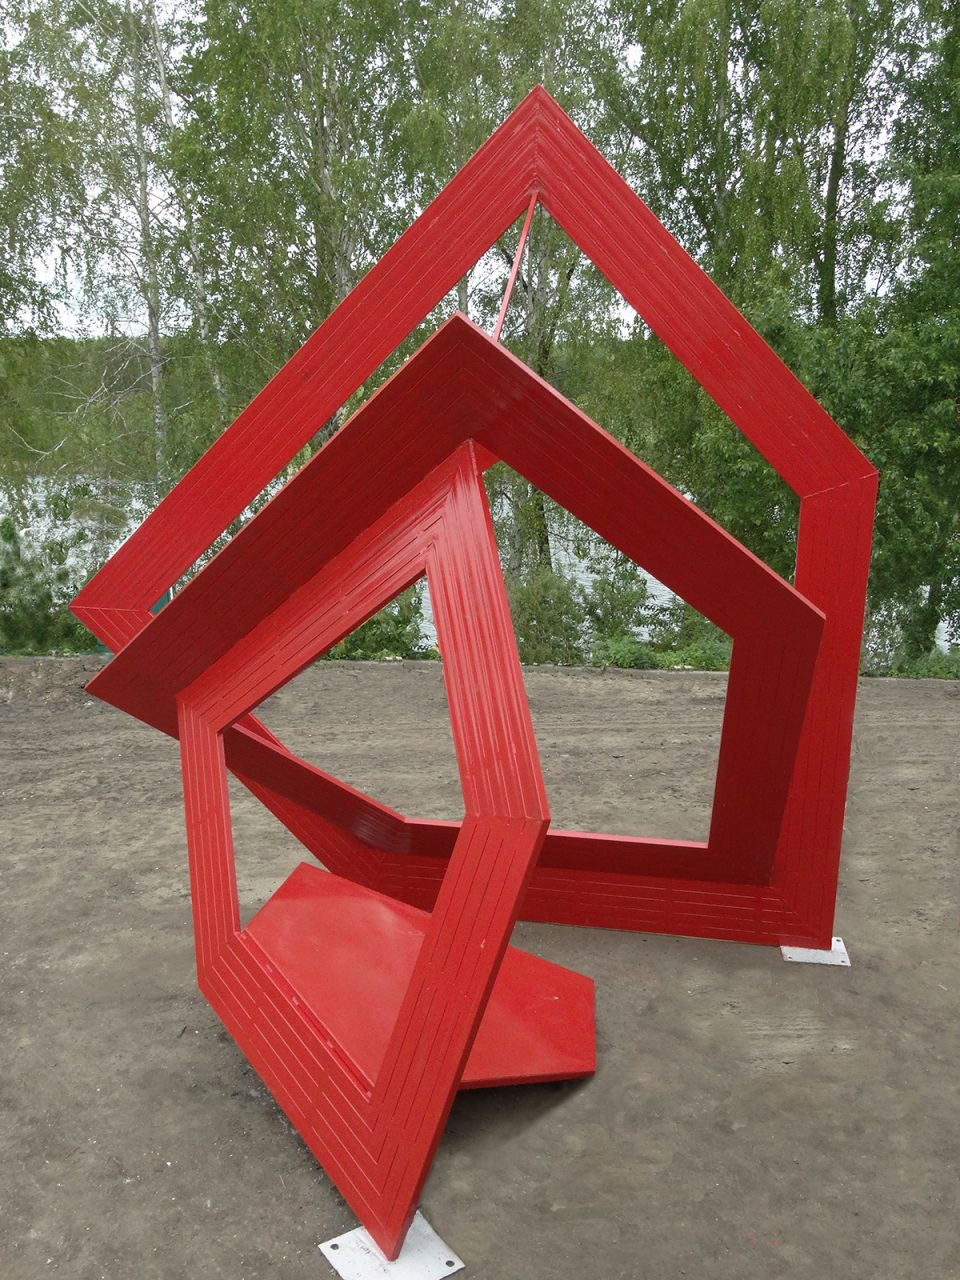 CUBIC FairyTale #51022020- 2016, Penza,, Russia, Steel, 500 x 550 x 450 cm, drawing, Project, sculpture, model, public sculpture, public art, architecture, contemporary art, art, Thierry Ferreira, design, installation, sitespecific, photography, video, Landart